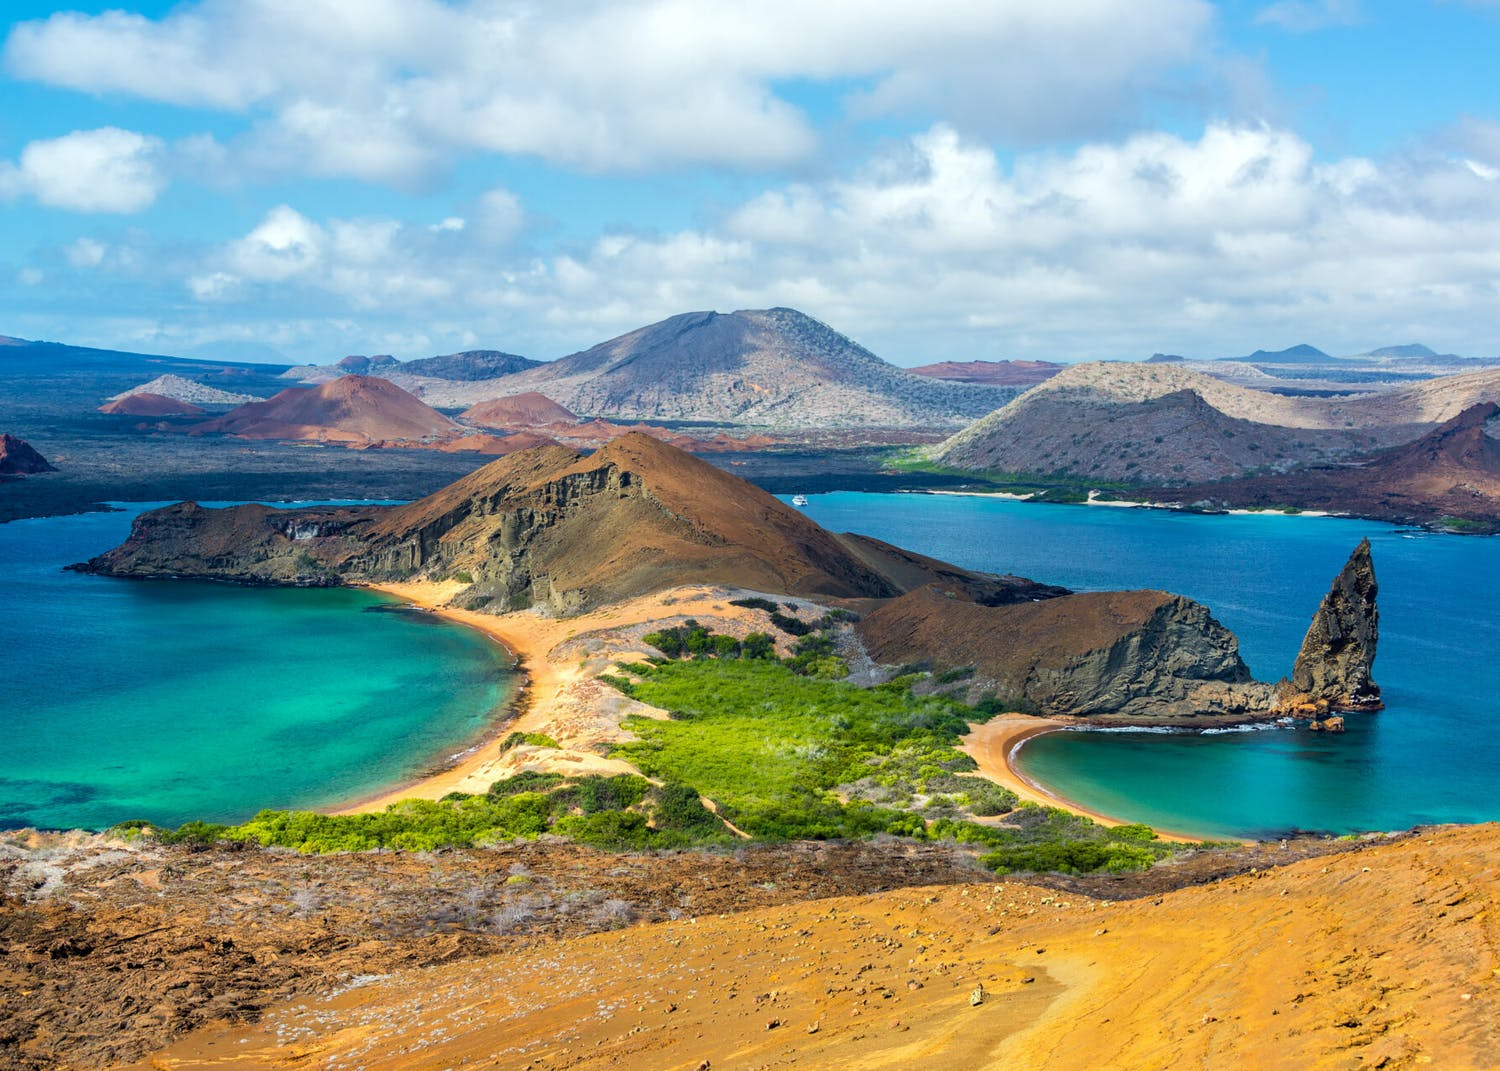 Panoramic view of Bartolome Island in the Galapagos